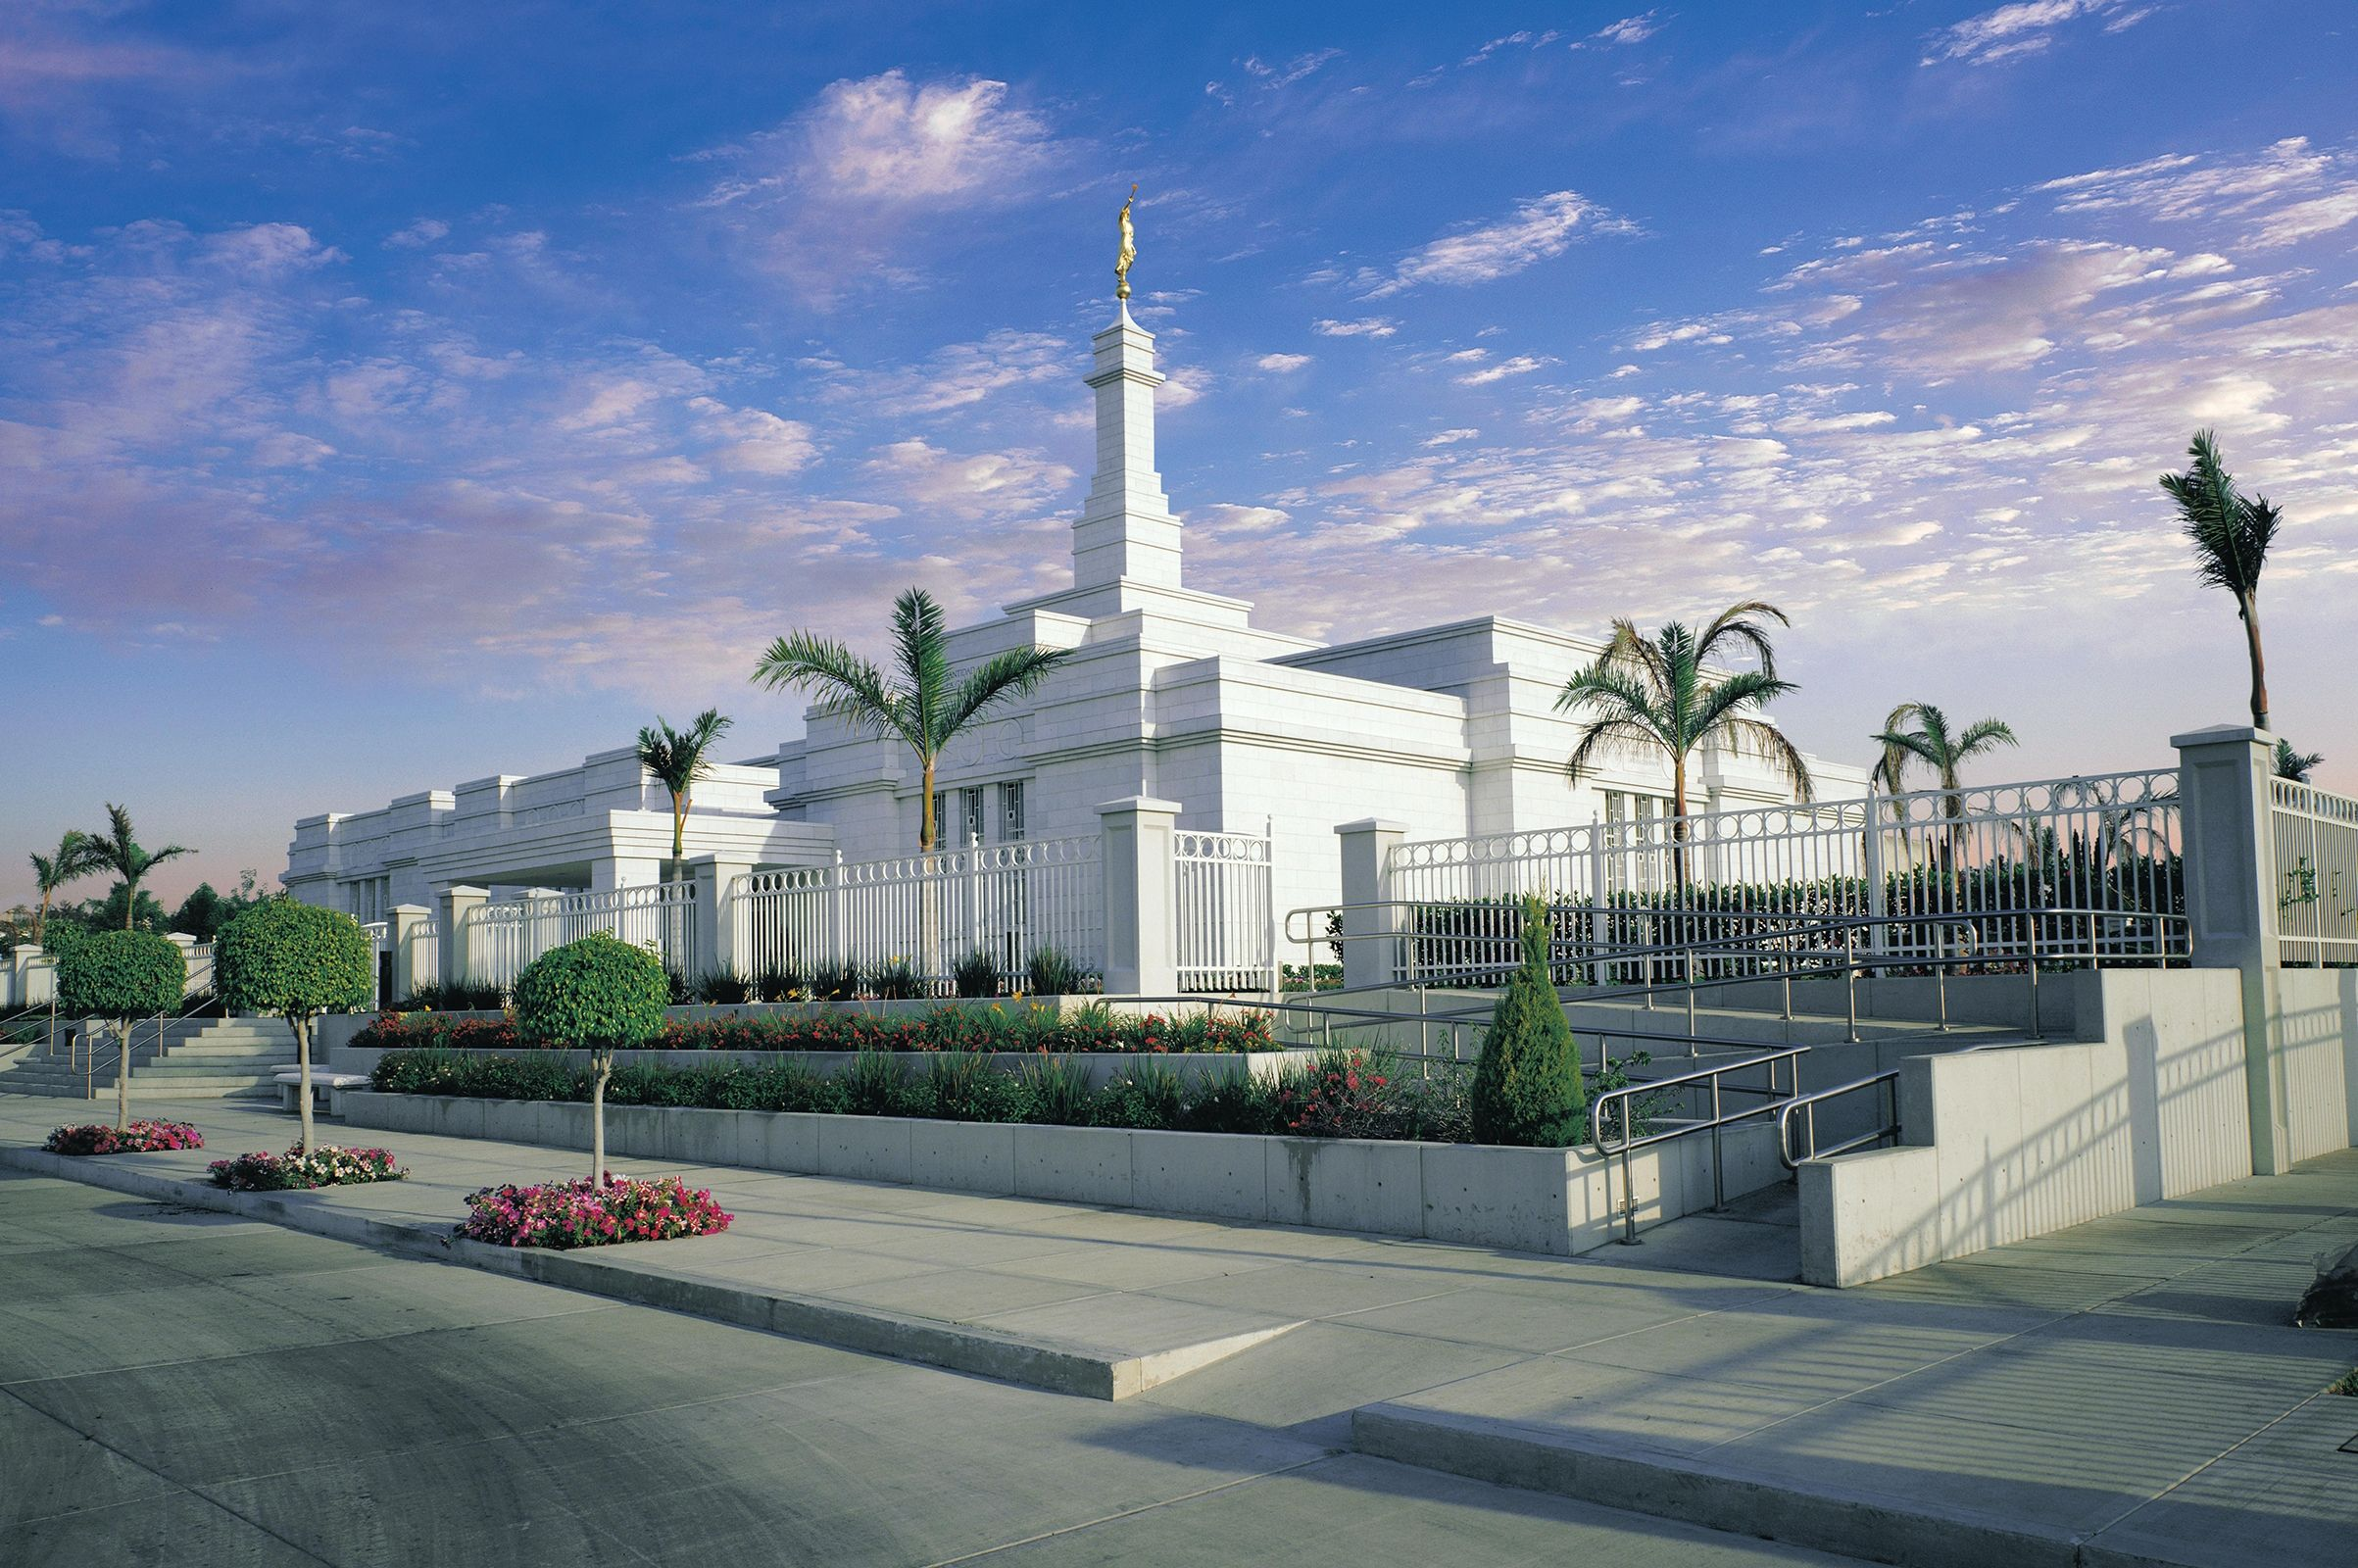 The Guadalajara Mexico Temple and grounds on a partly cloudy day.